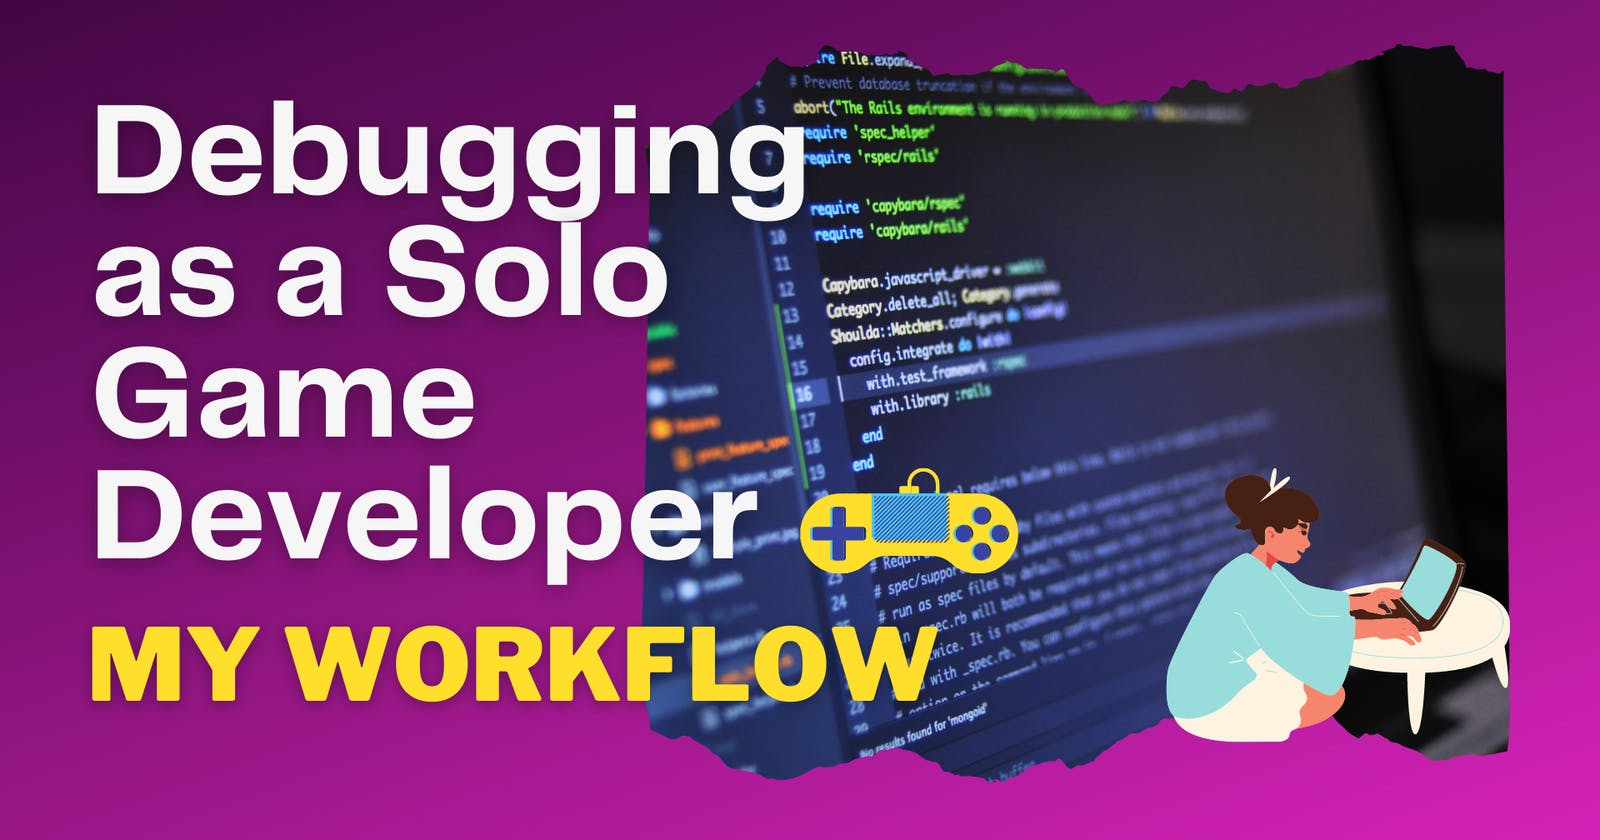 Debugging as a Solo Game Developer: My Workflow